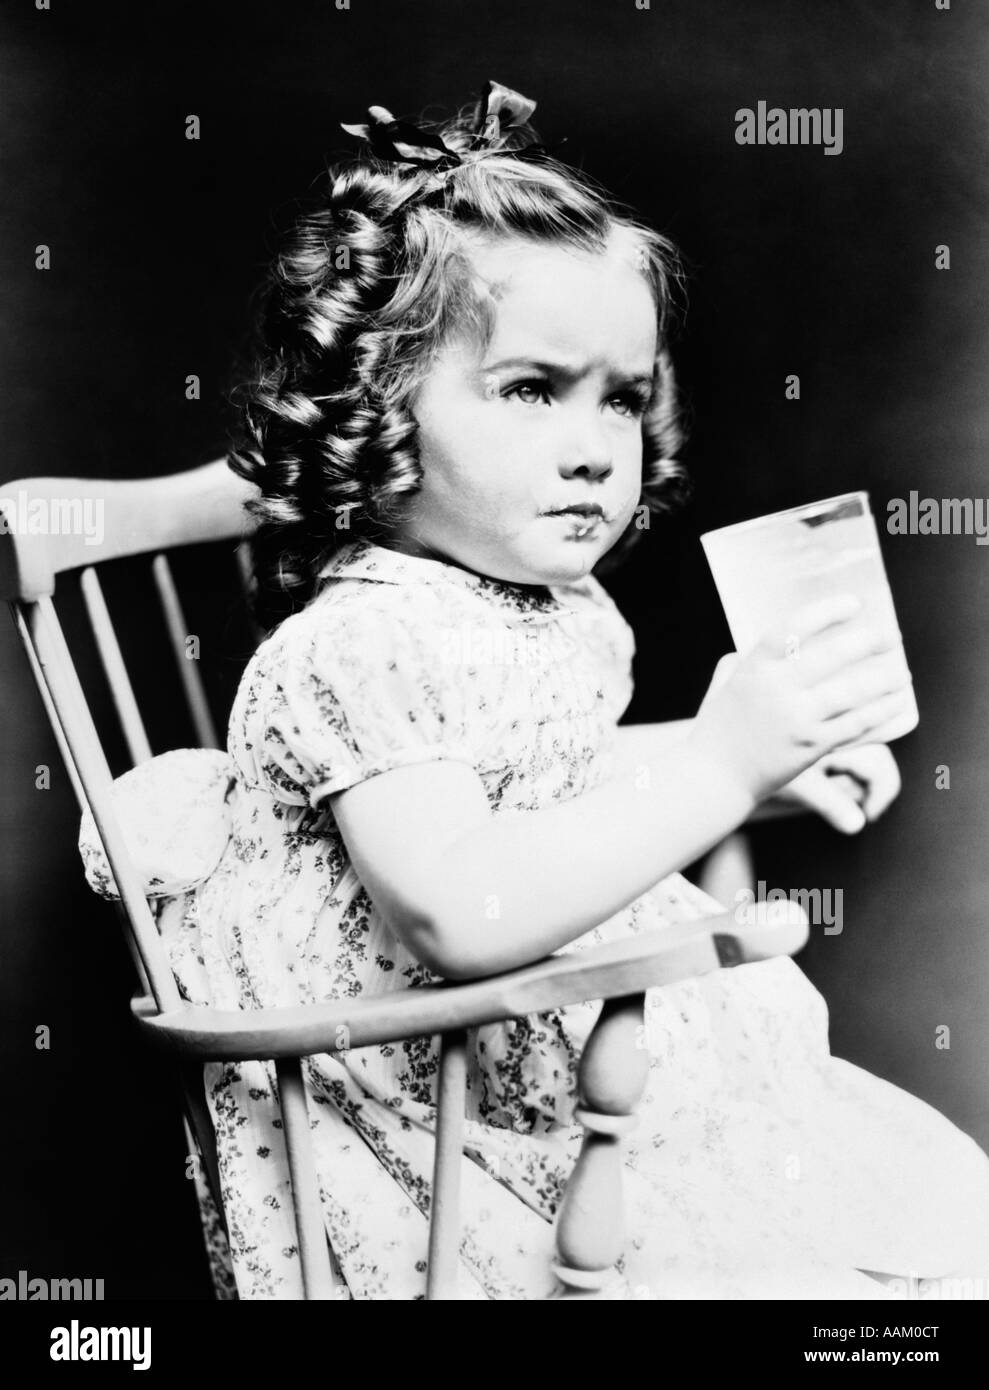 Black child sitting in chair - 1930s Child Girl Sitting In High Chair Holding Glass Of Milk Serious Look Bow In Hair Baloney Curls